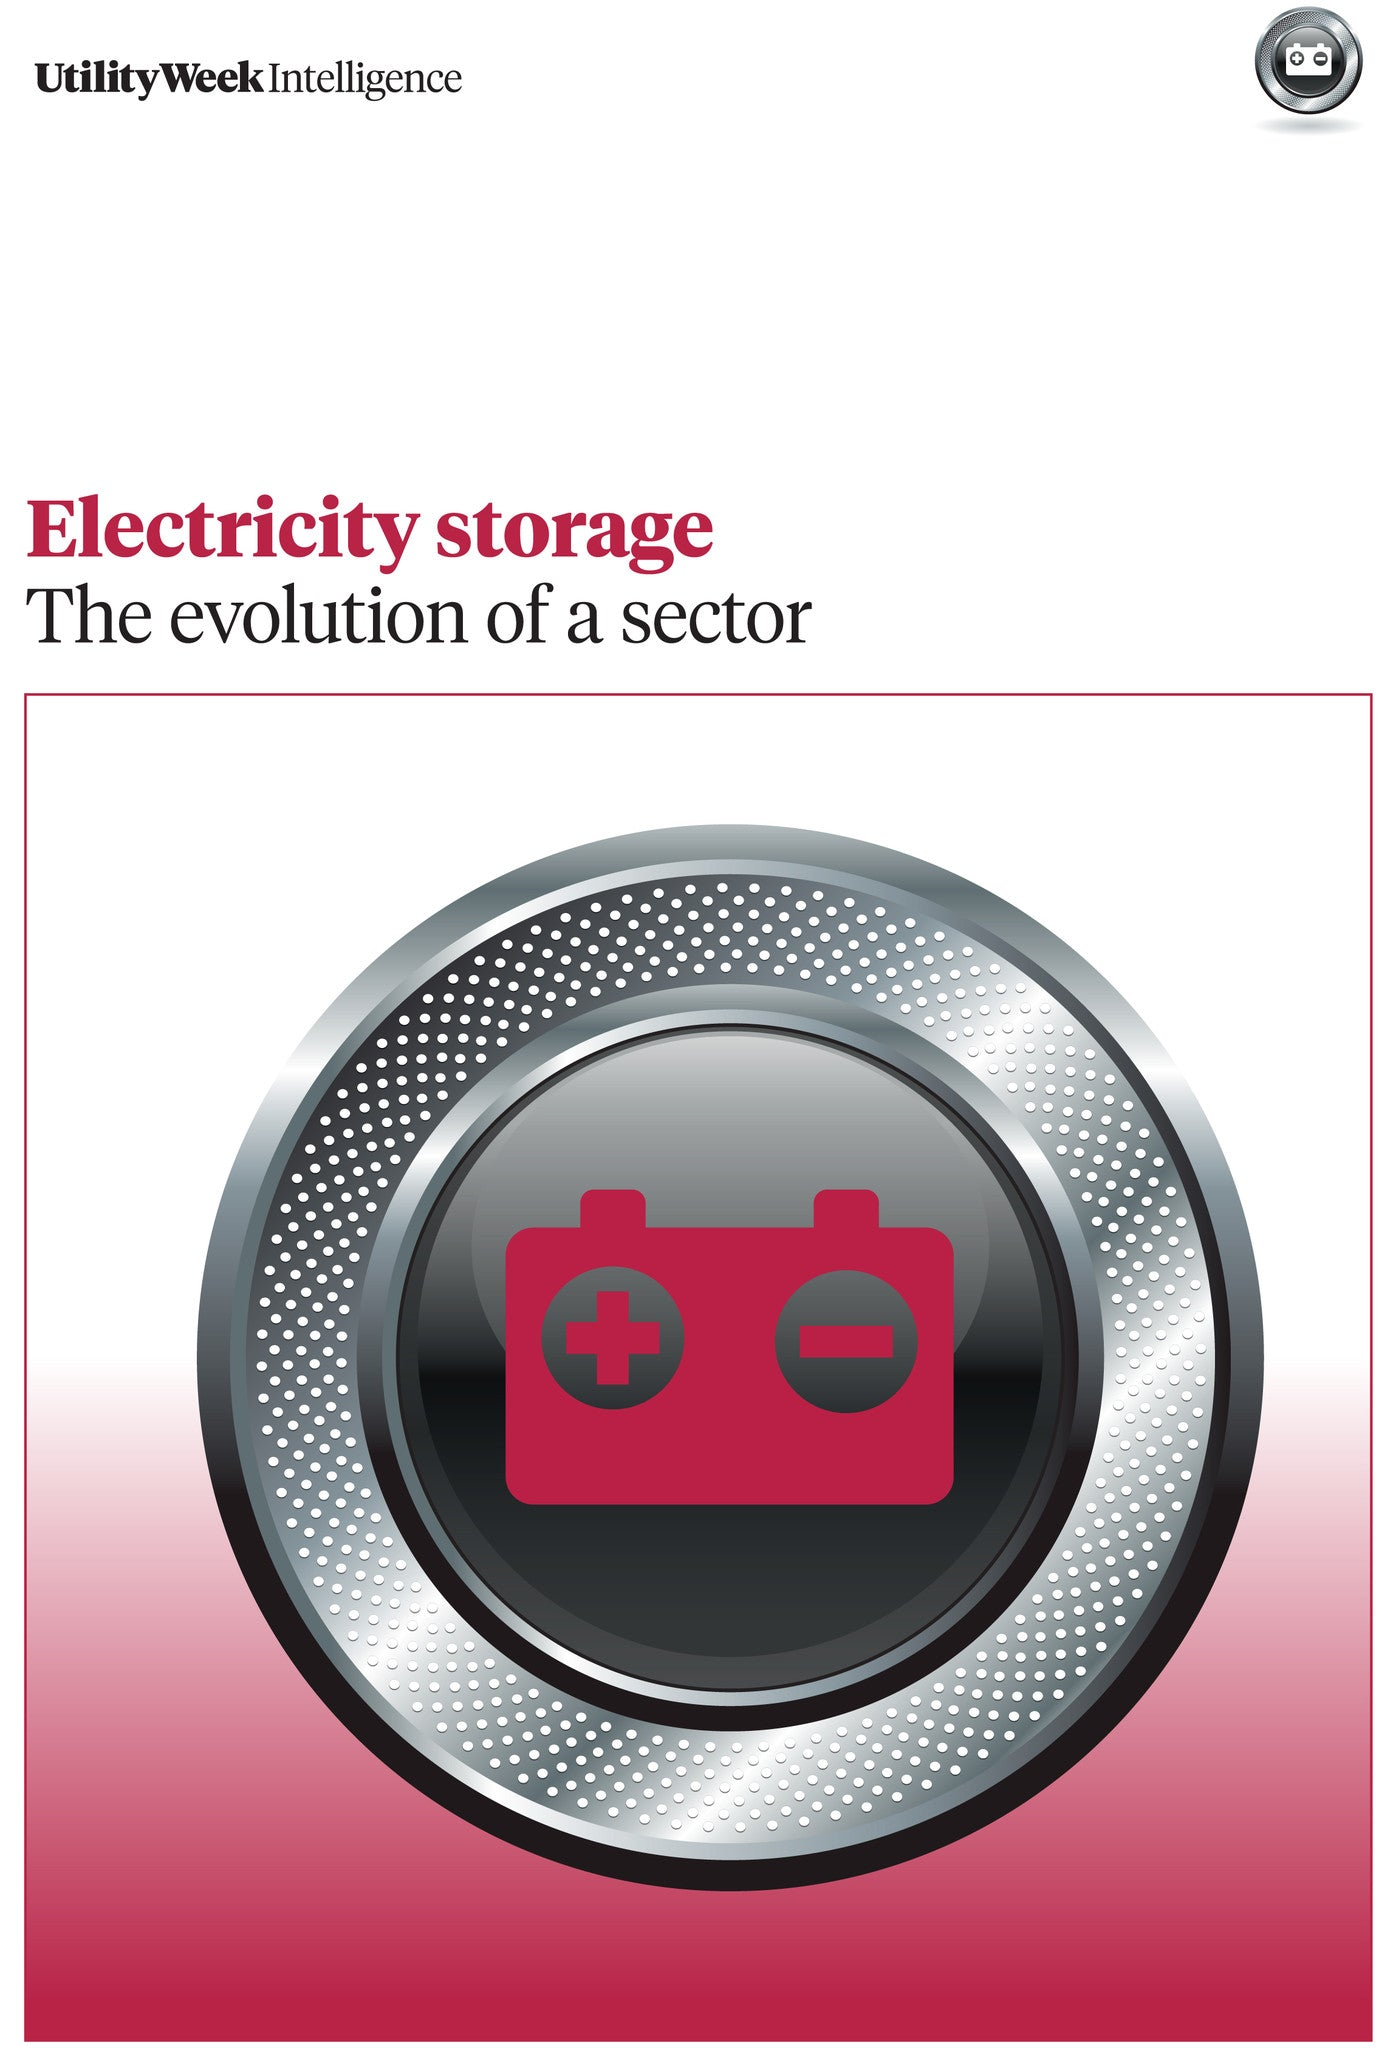 Energy storage: the evolution of a sector